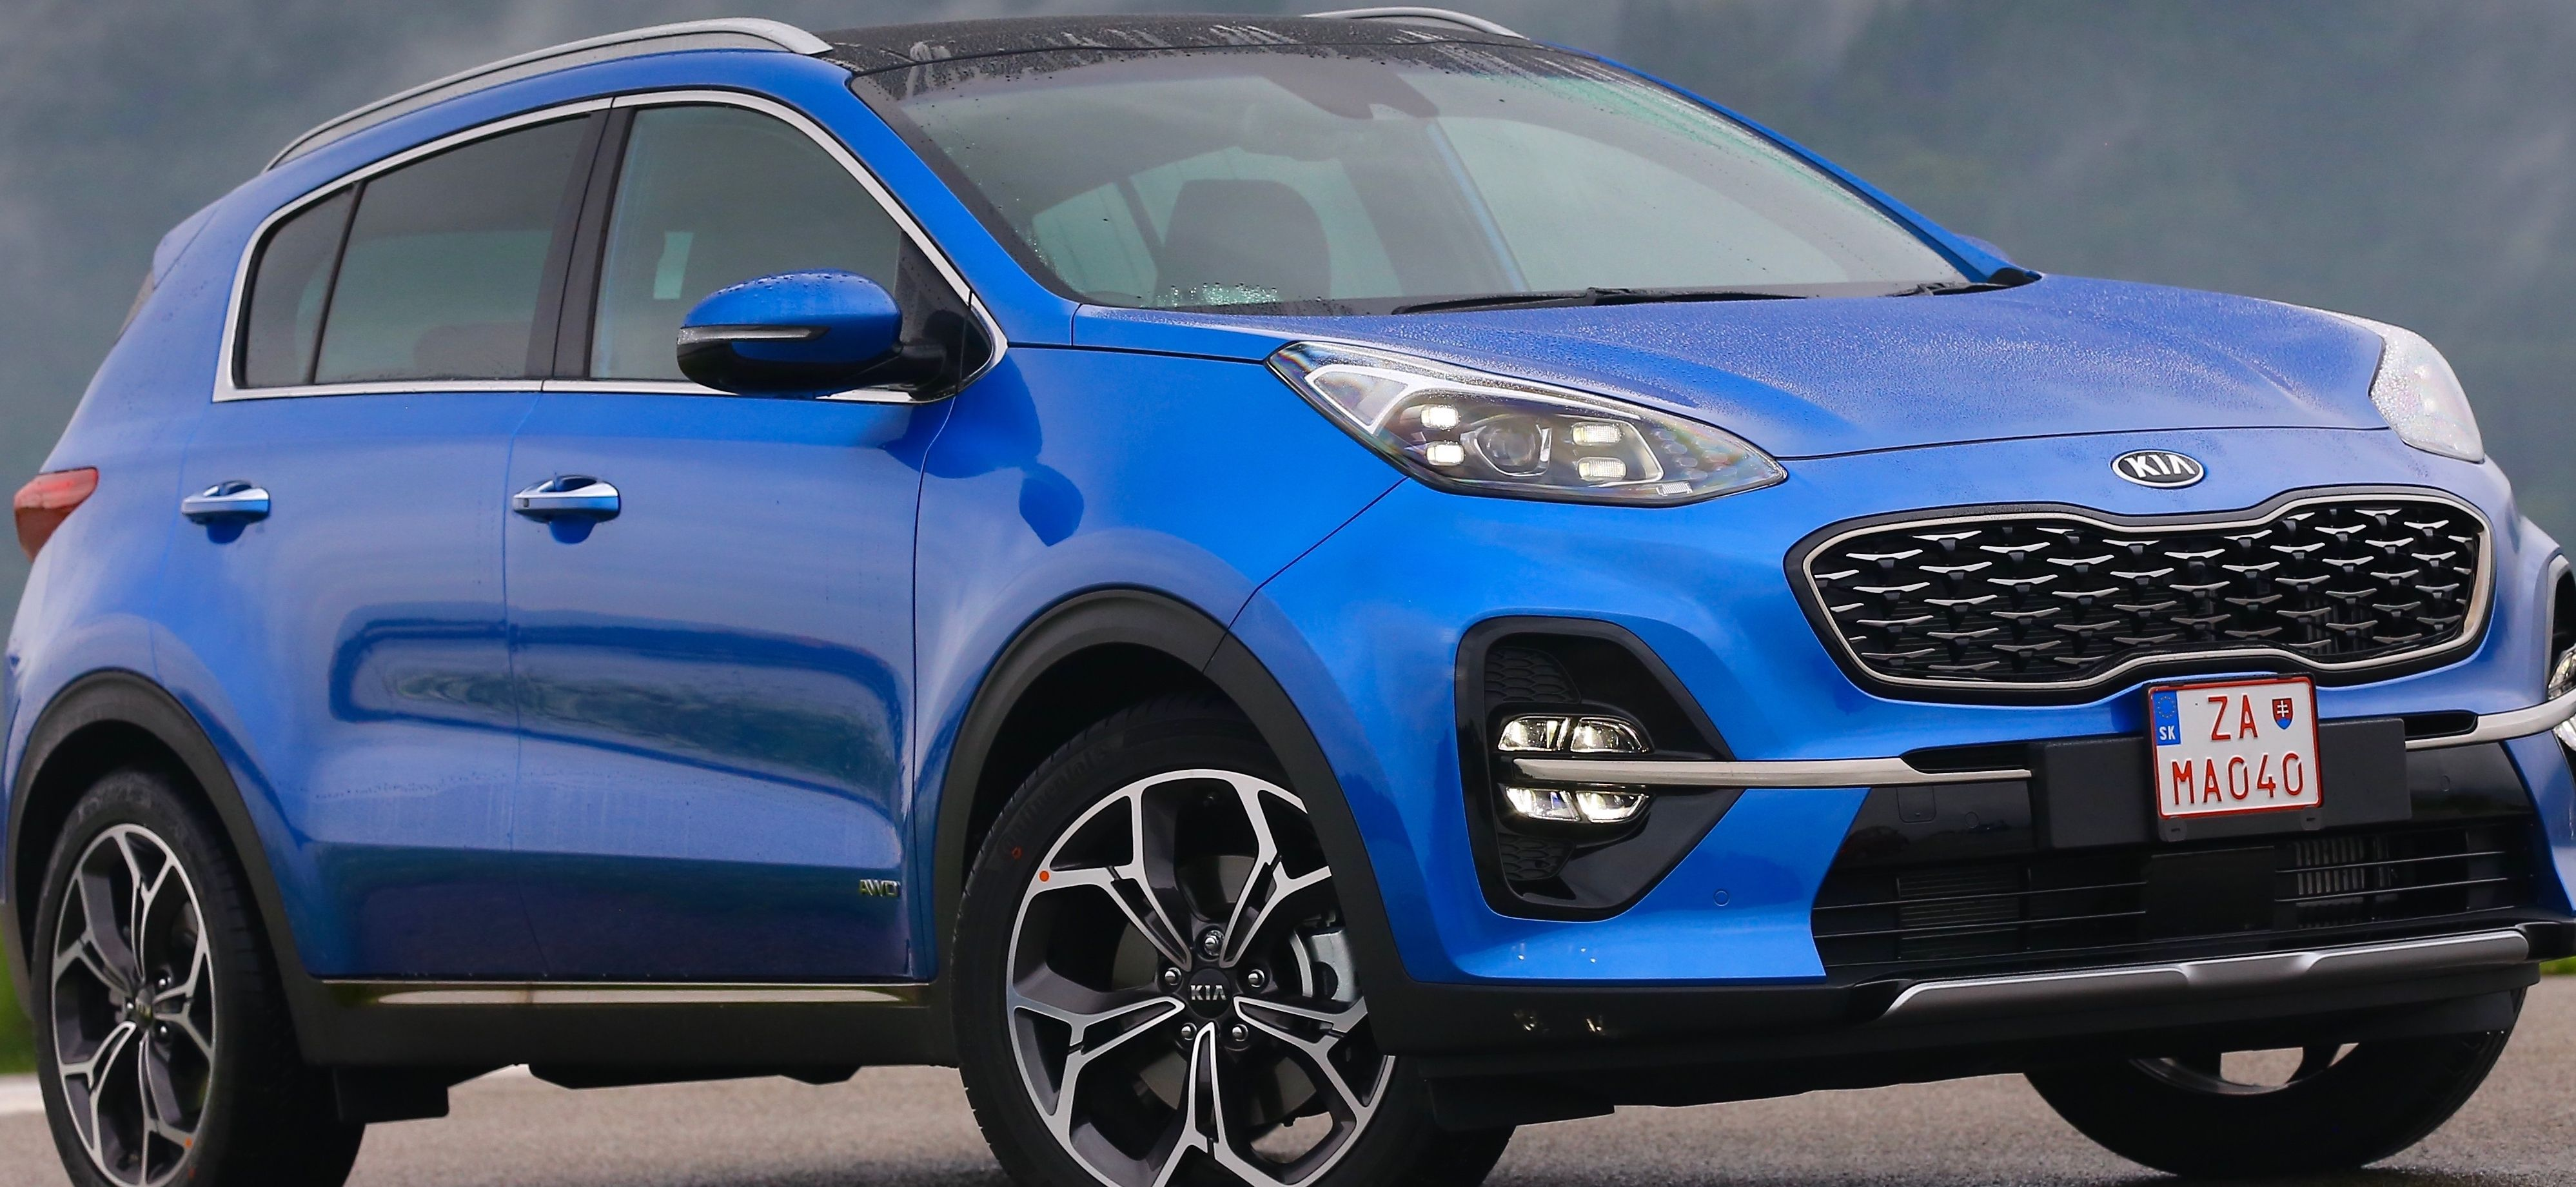 The Kia Sportage is one of the most popular midsized SUVs